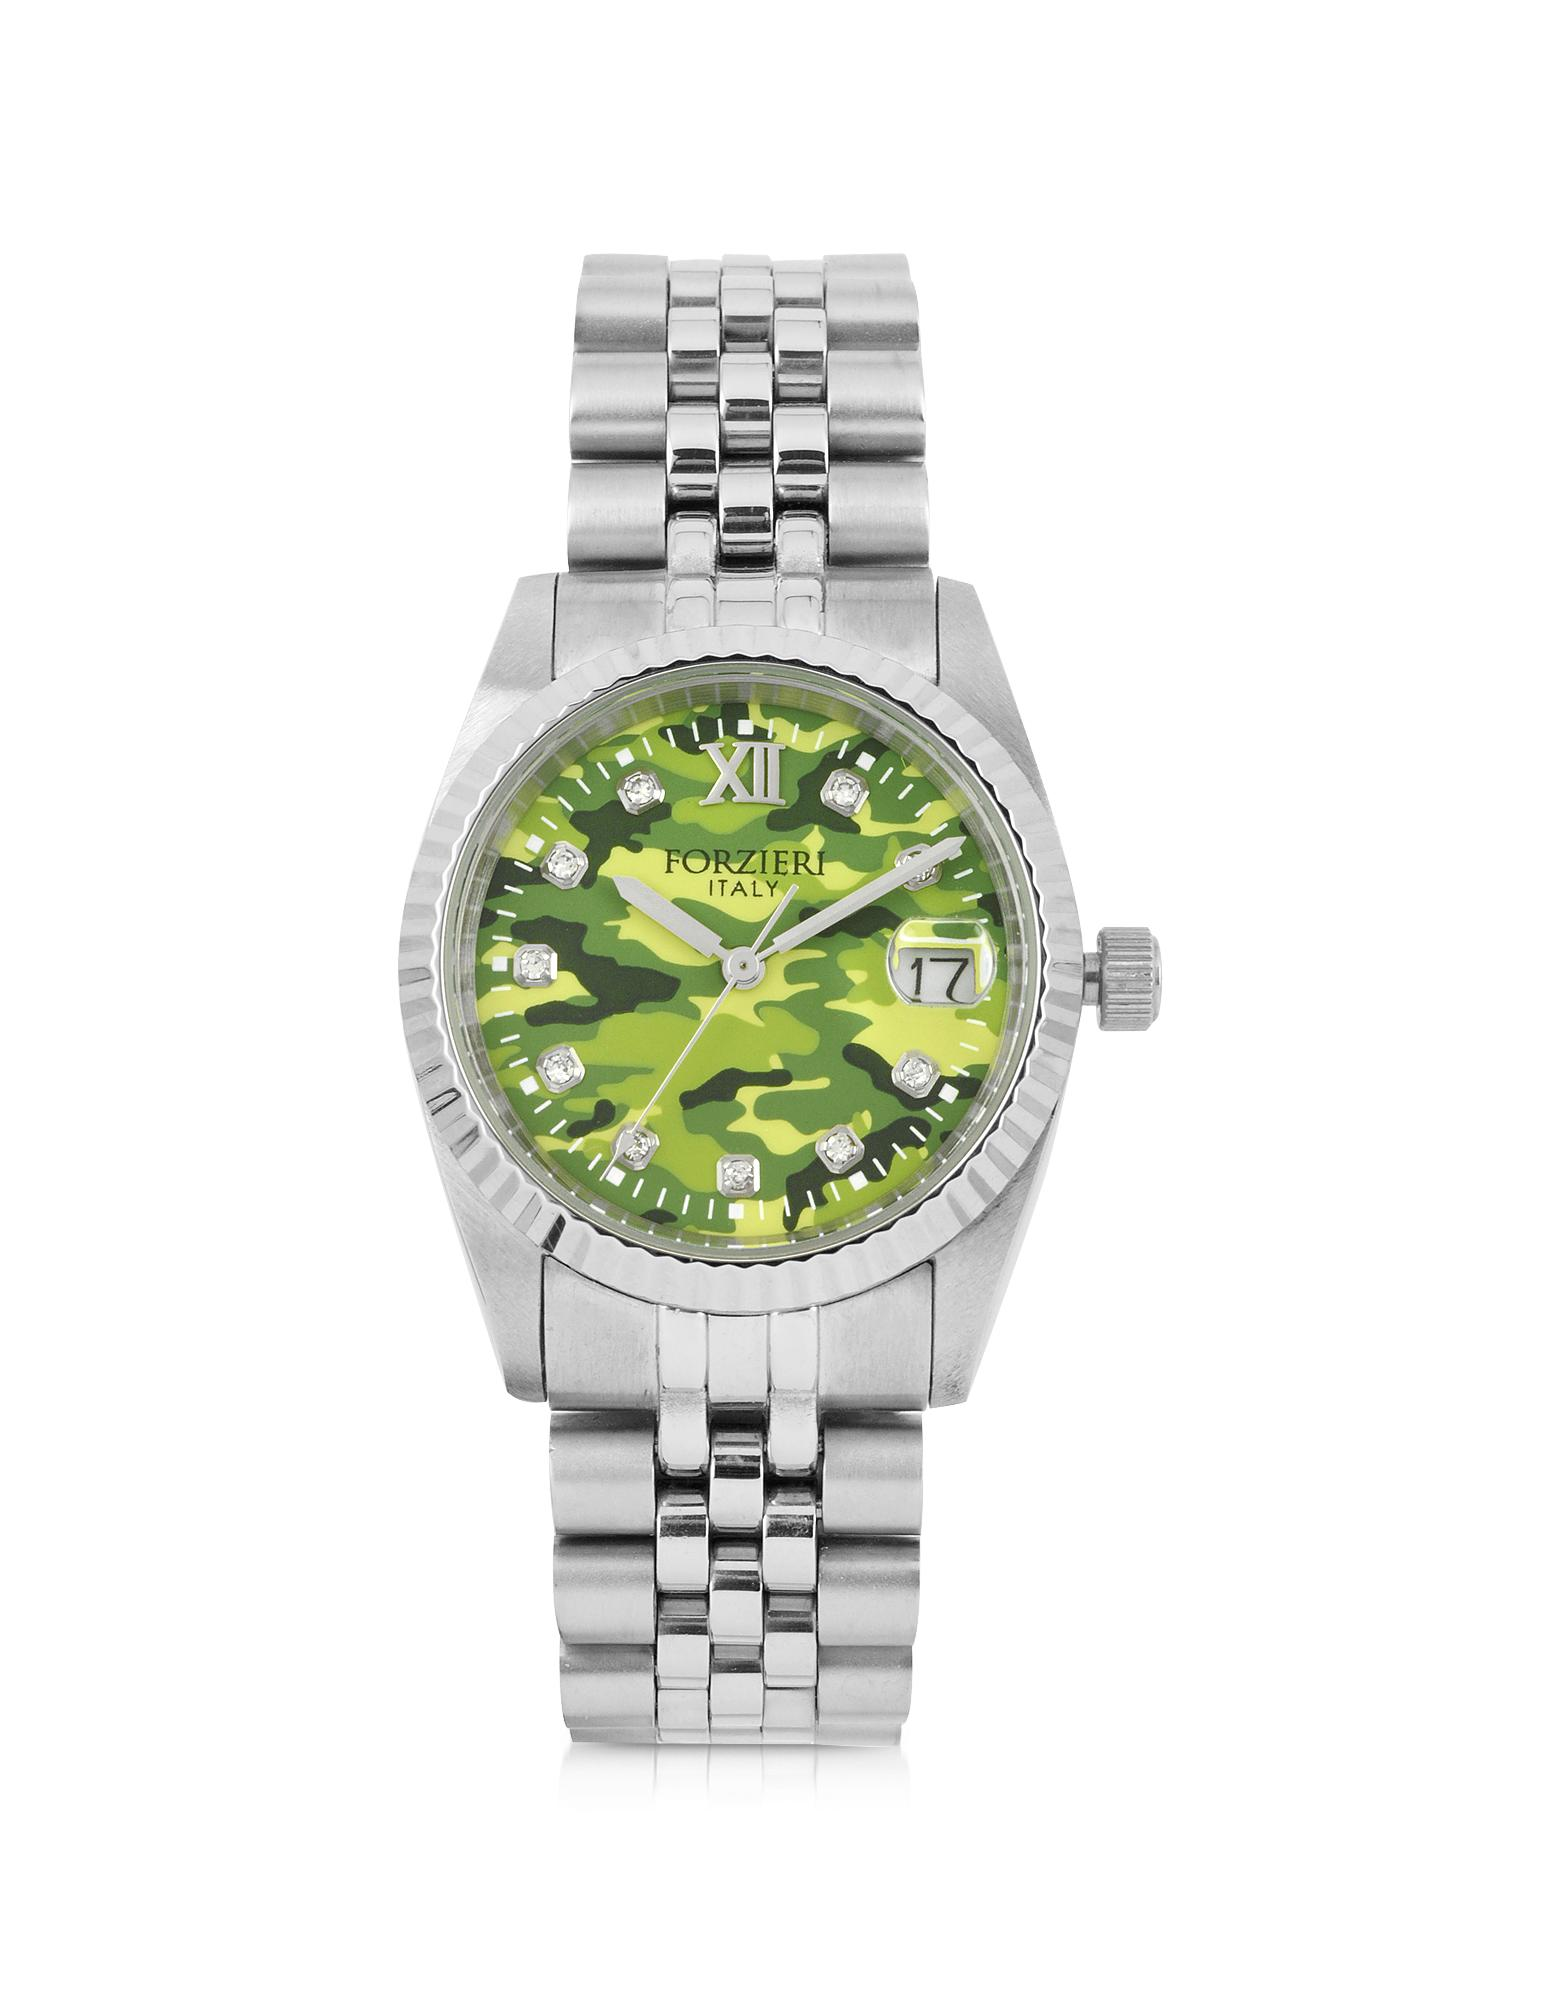 Trevi Silver Tone Stainless Steel Women's Watch w/Green Camo Dial - Forzieri